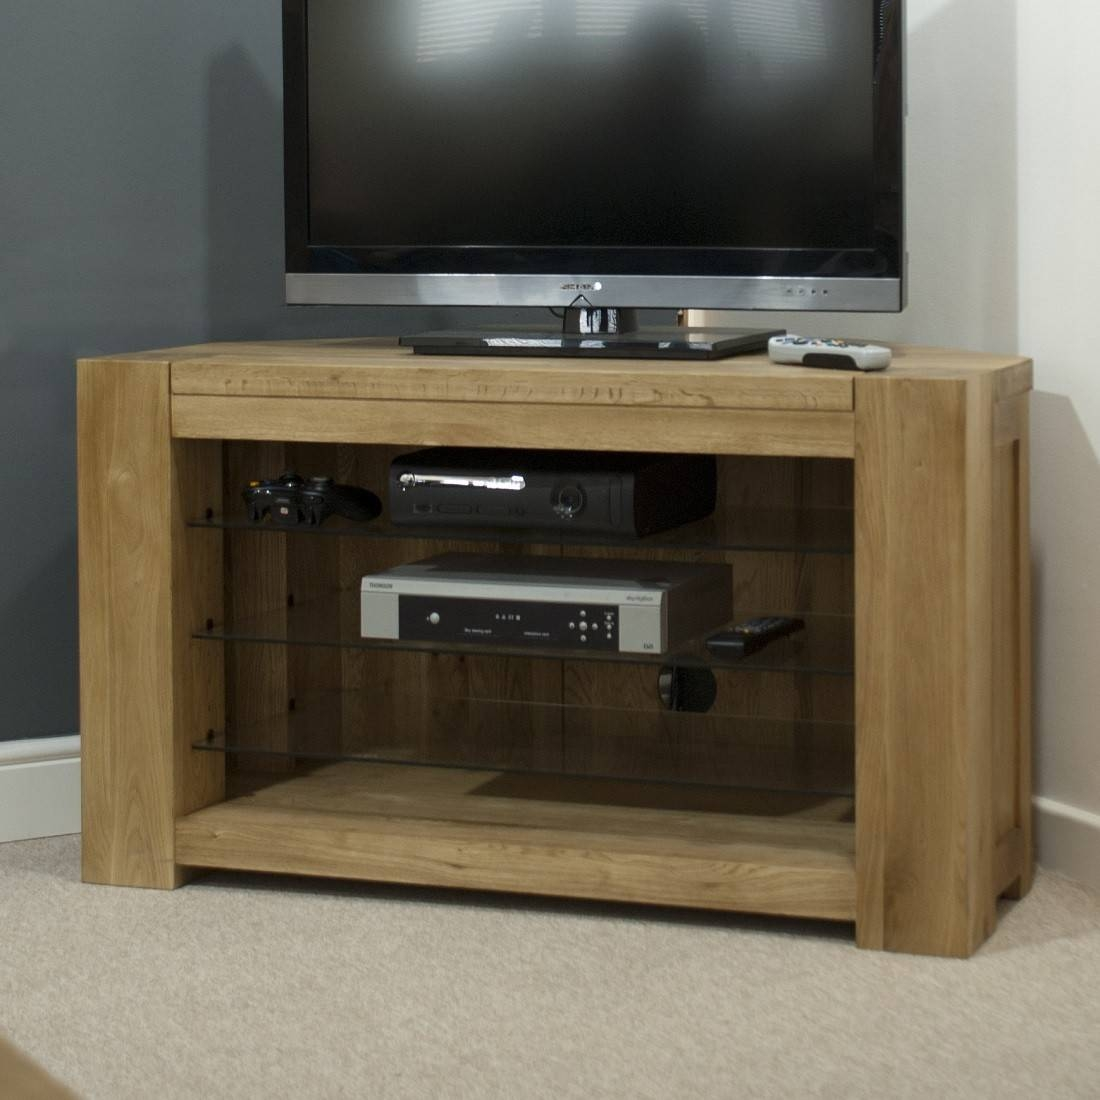 Trend Solid Oak Corner Tv Unit | Oak Furniture Uk in Solid Wood Corner Tv Cabinets (Image 14 of 15)